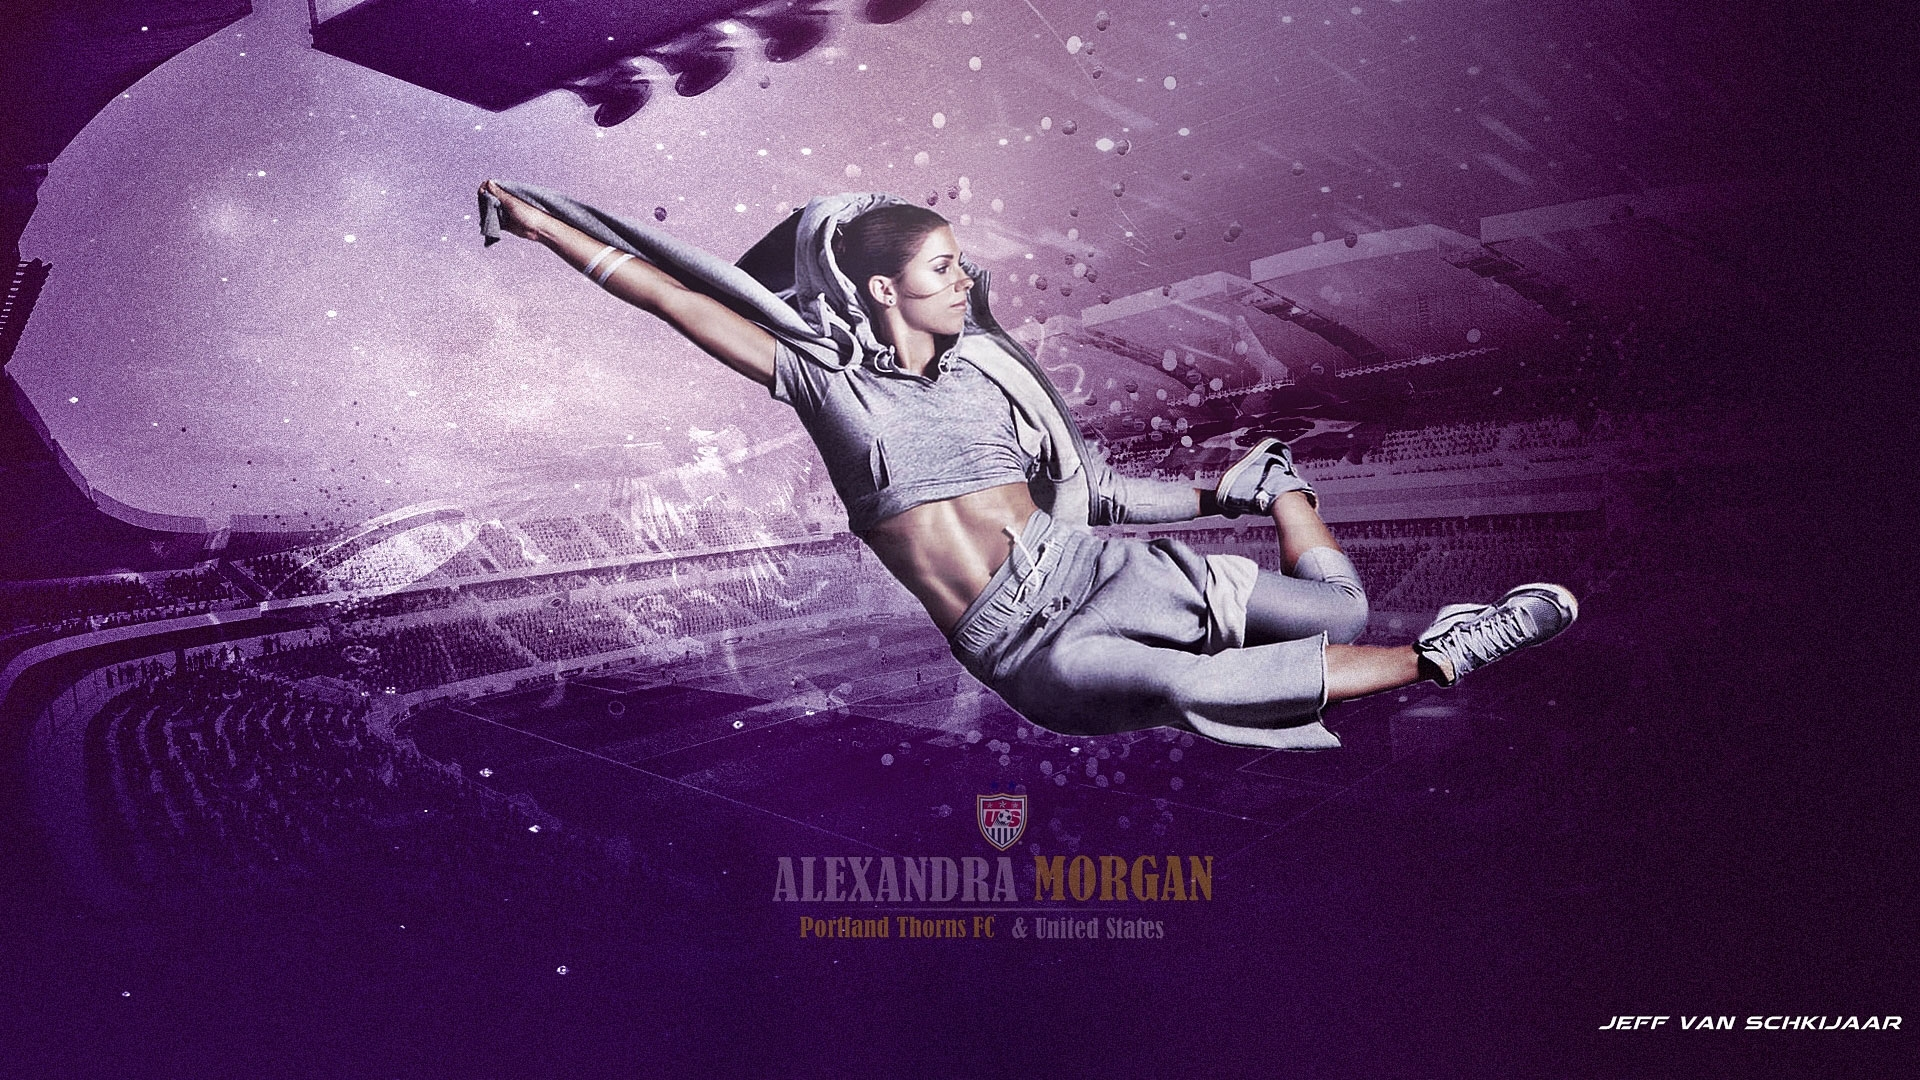 Alex Morgan full screen hd wallpaper